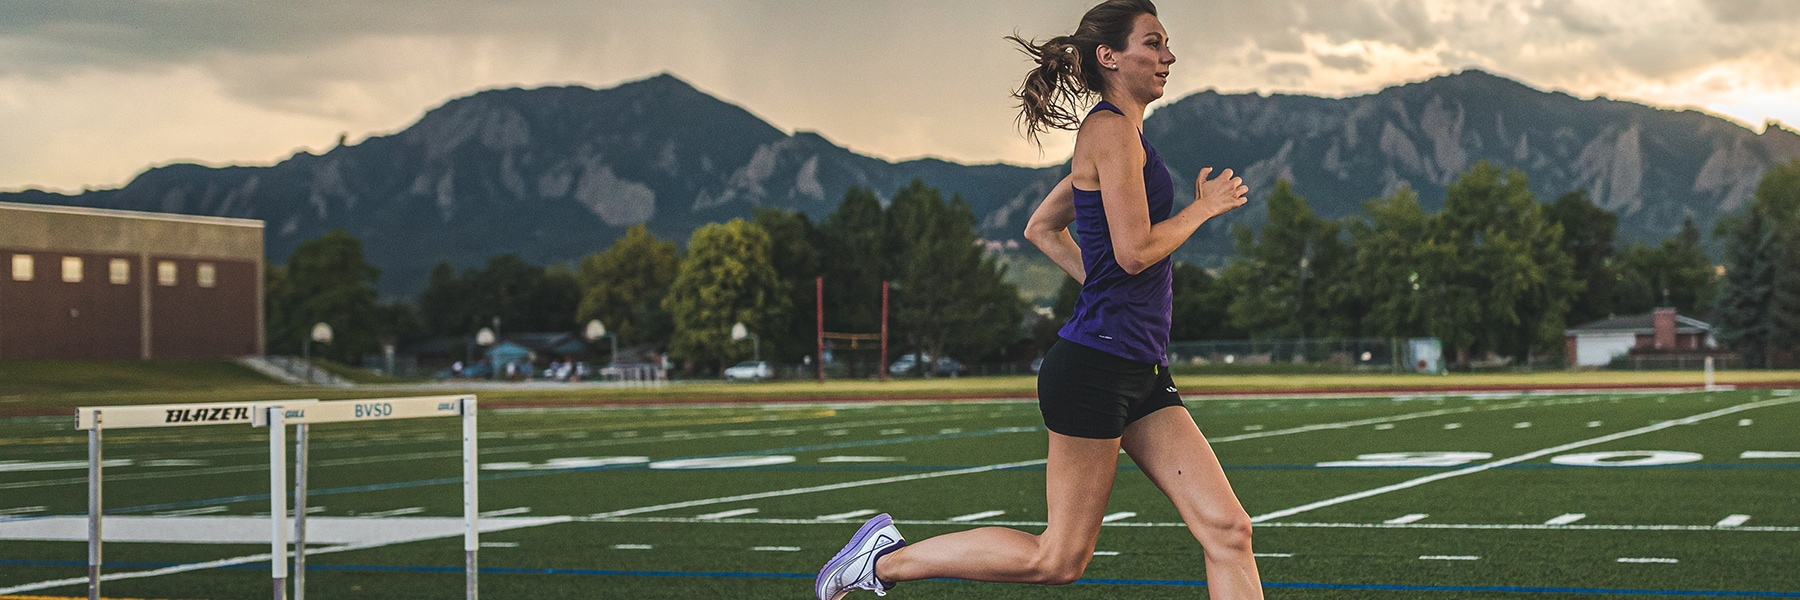 Woman training on a track with mountains in the background